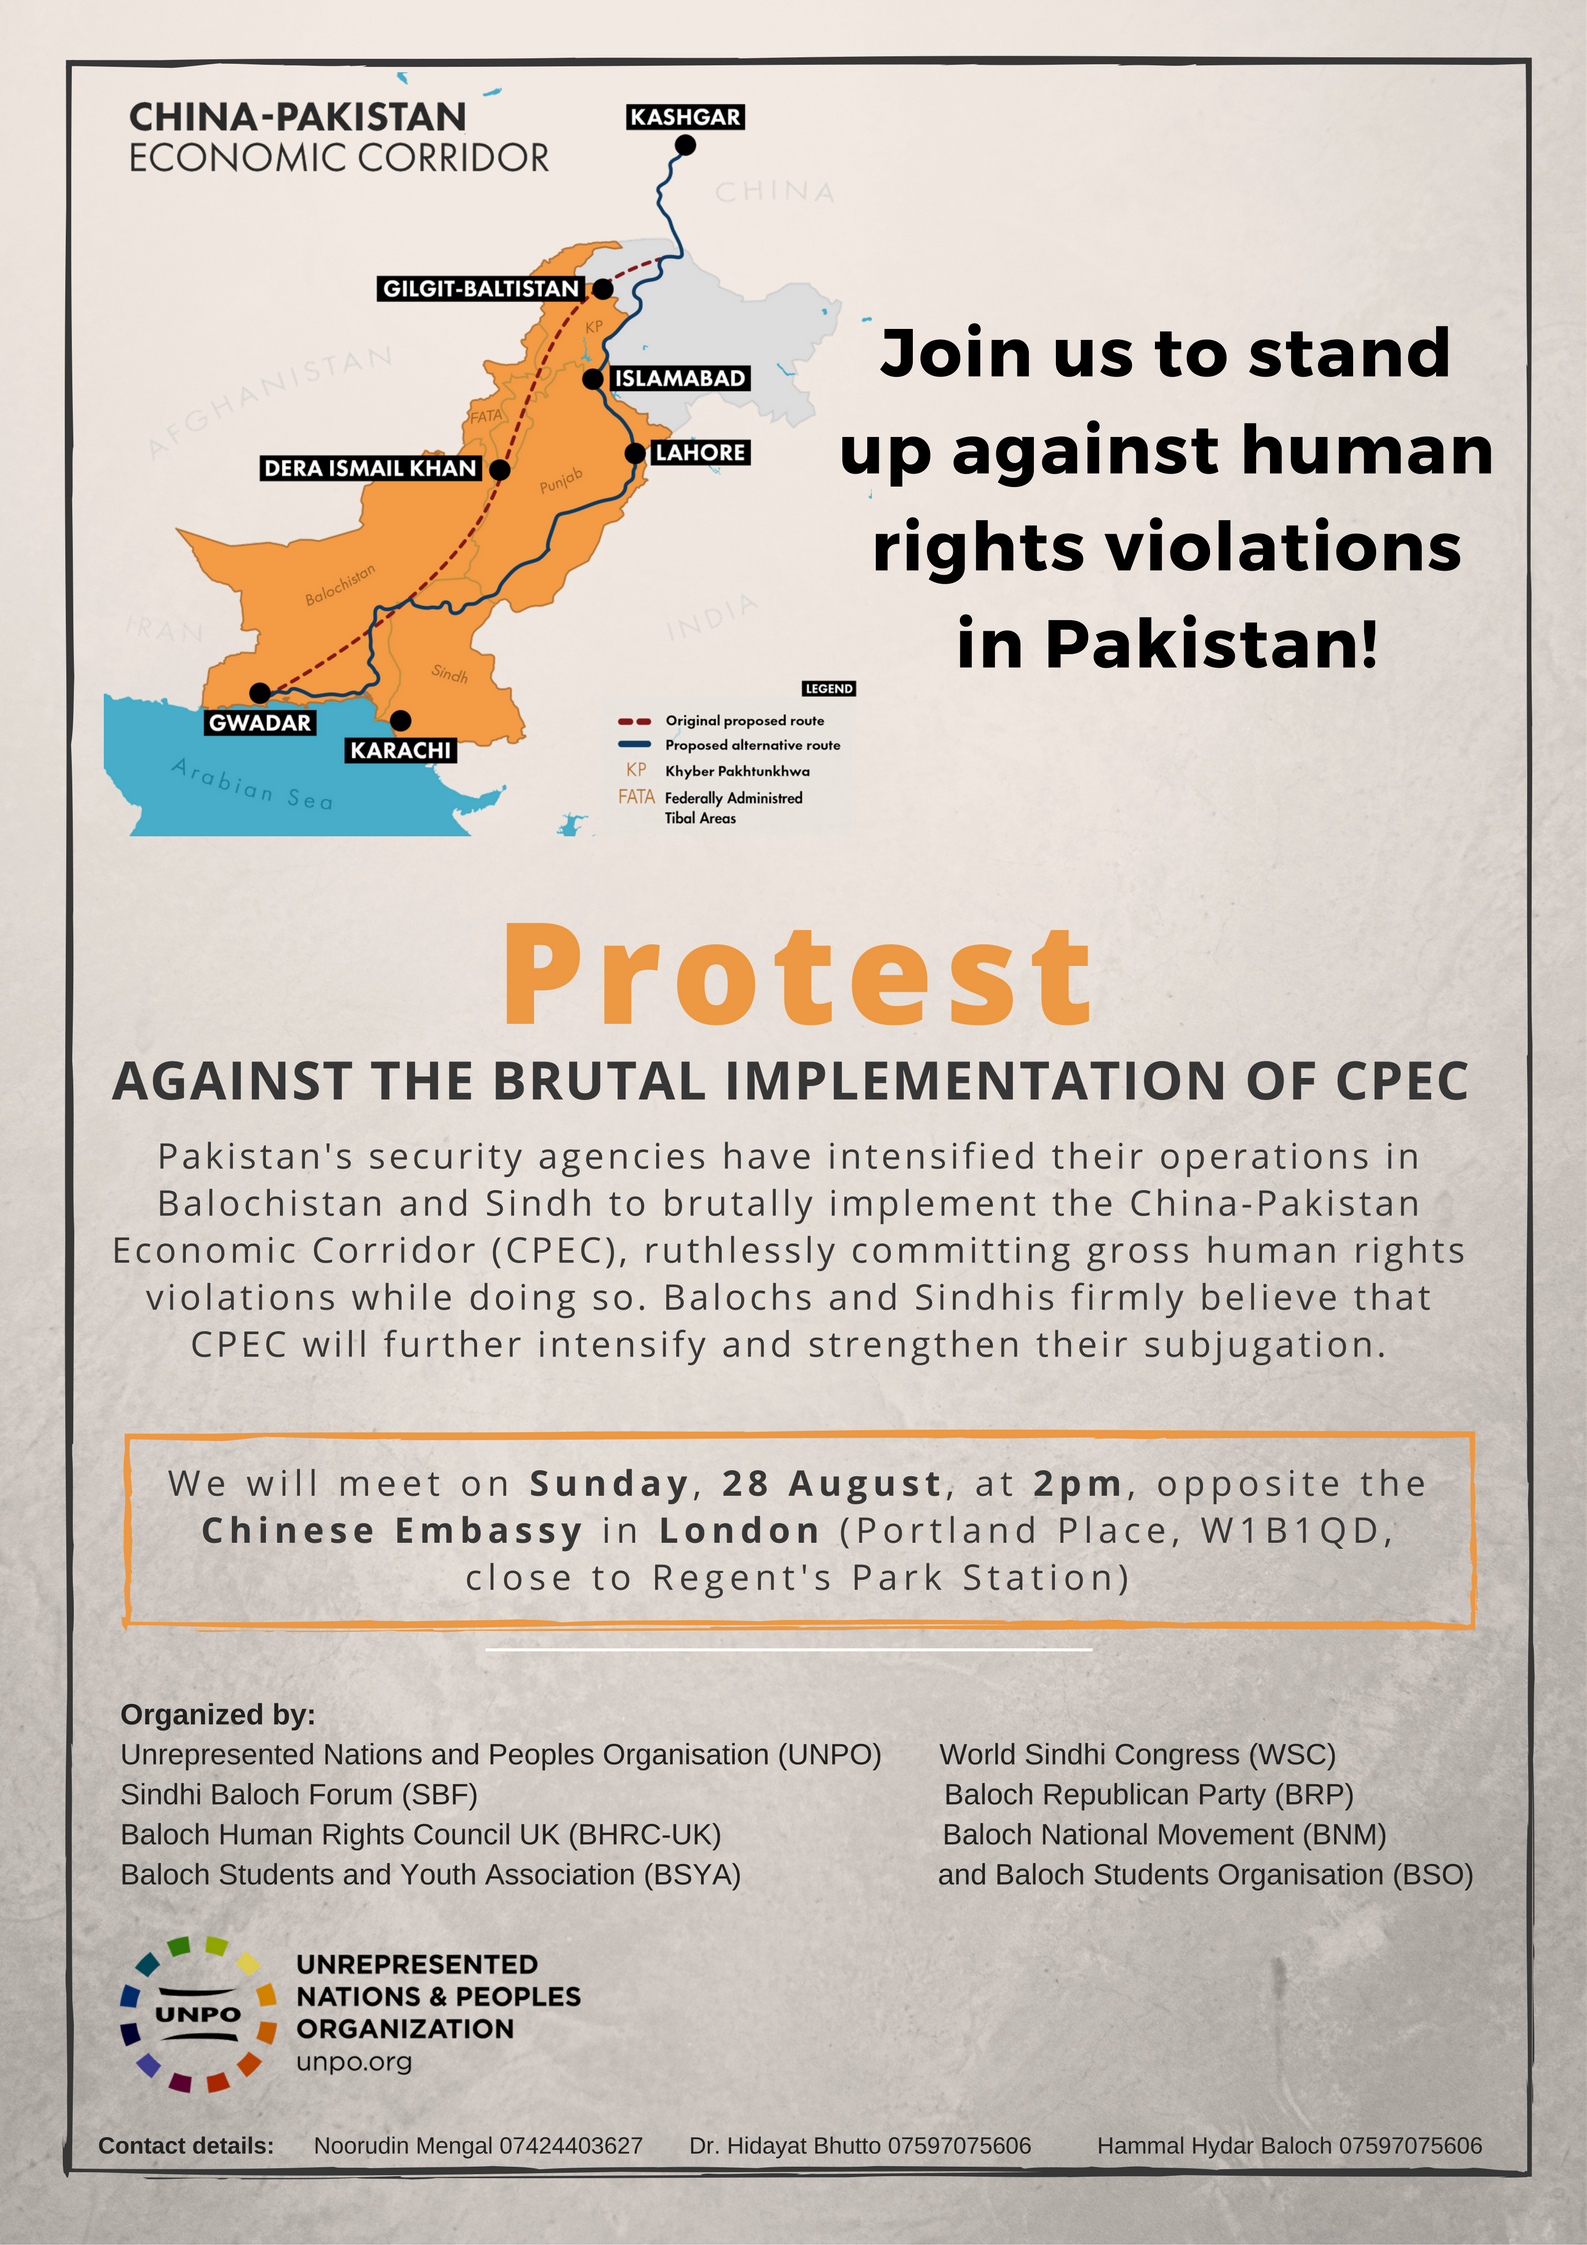 Protest Against Human Rights Abuses Related to Brutal Implementation of CPEC, 28 August 2016, London